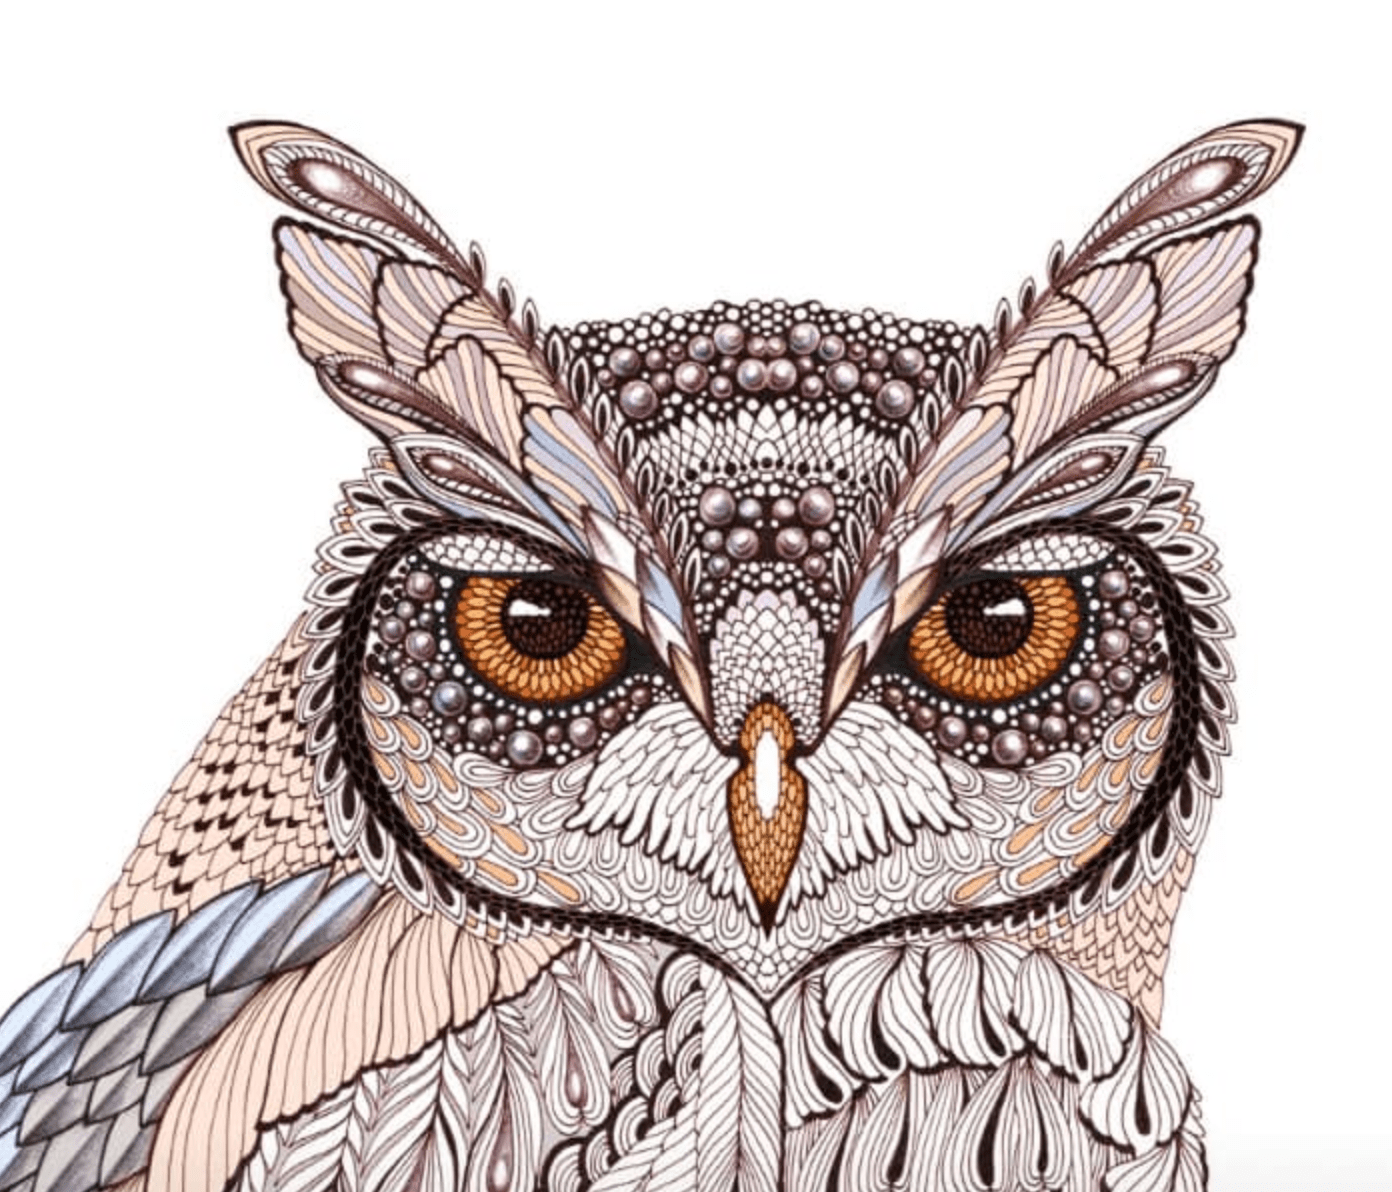 OWL. Design for www.atriumnyc.com